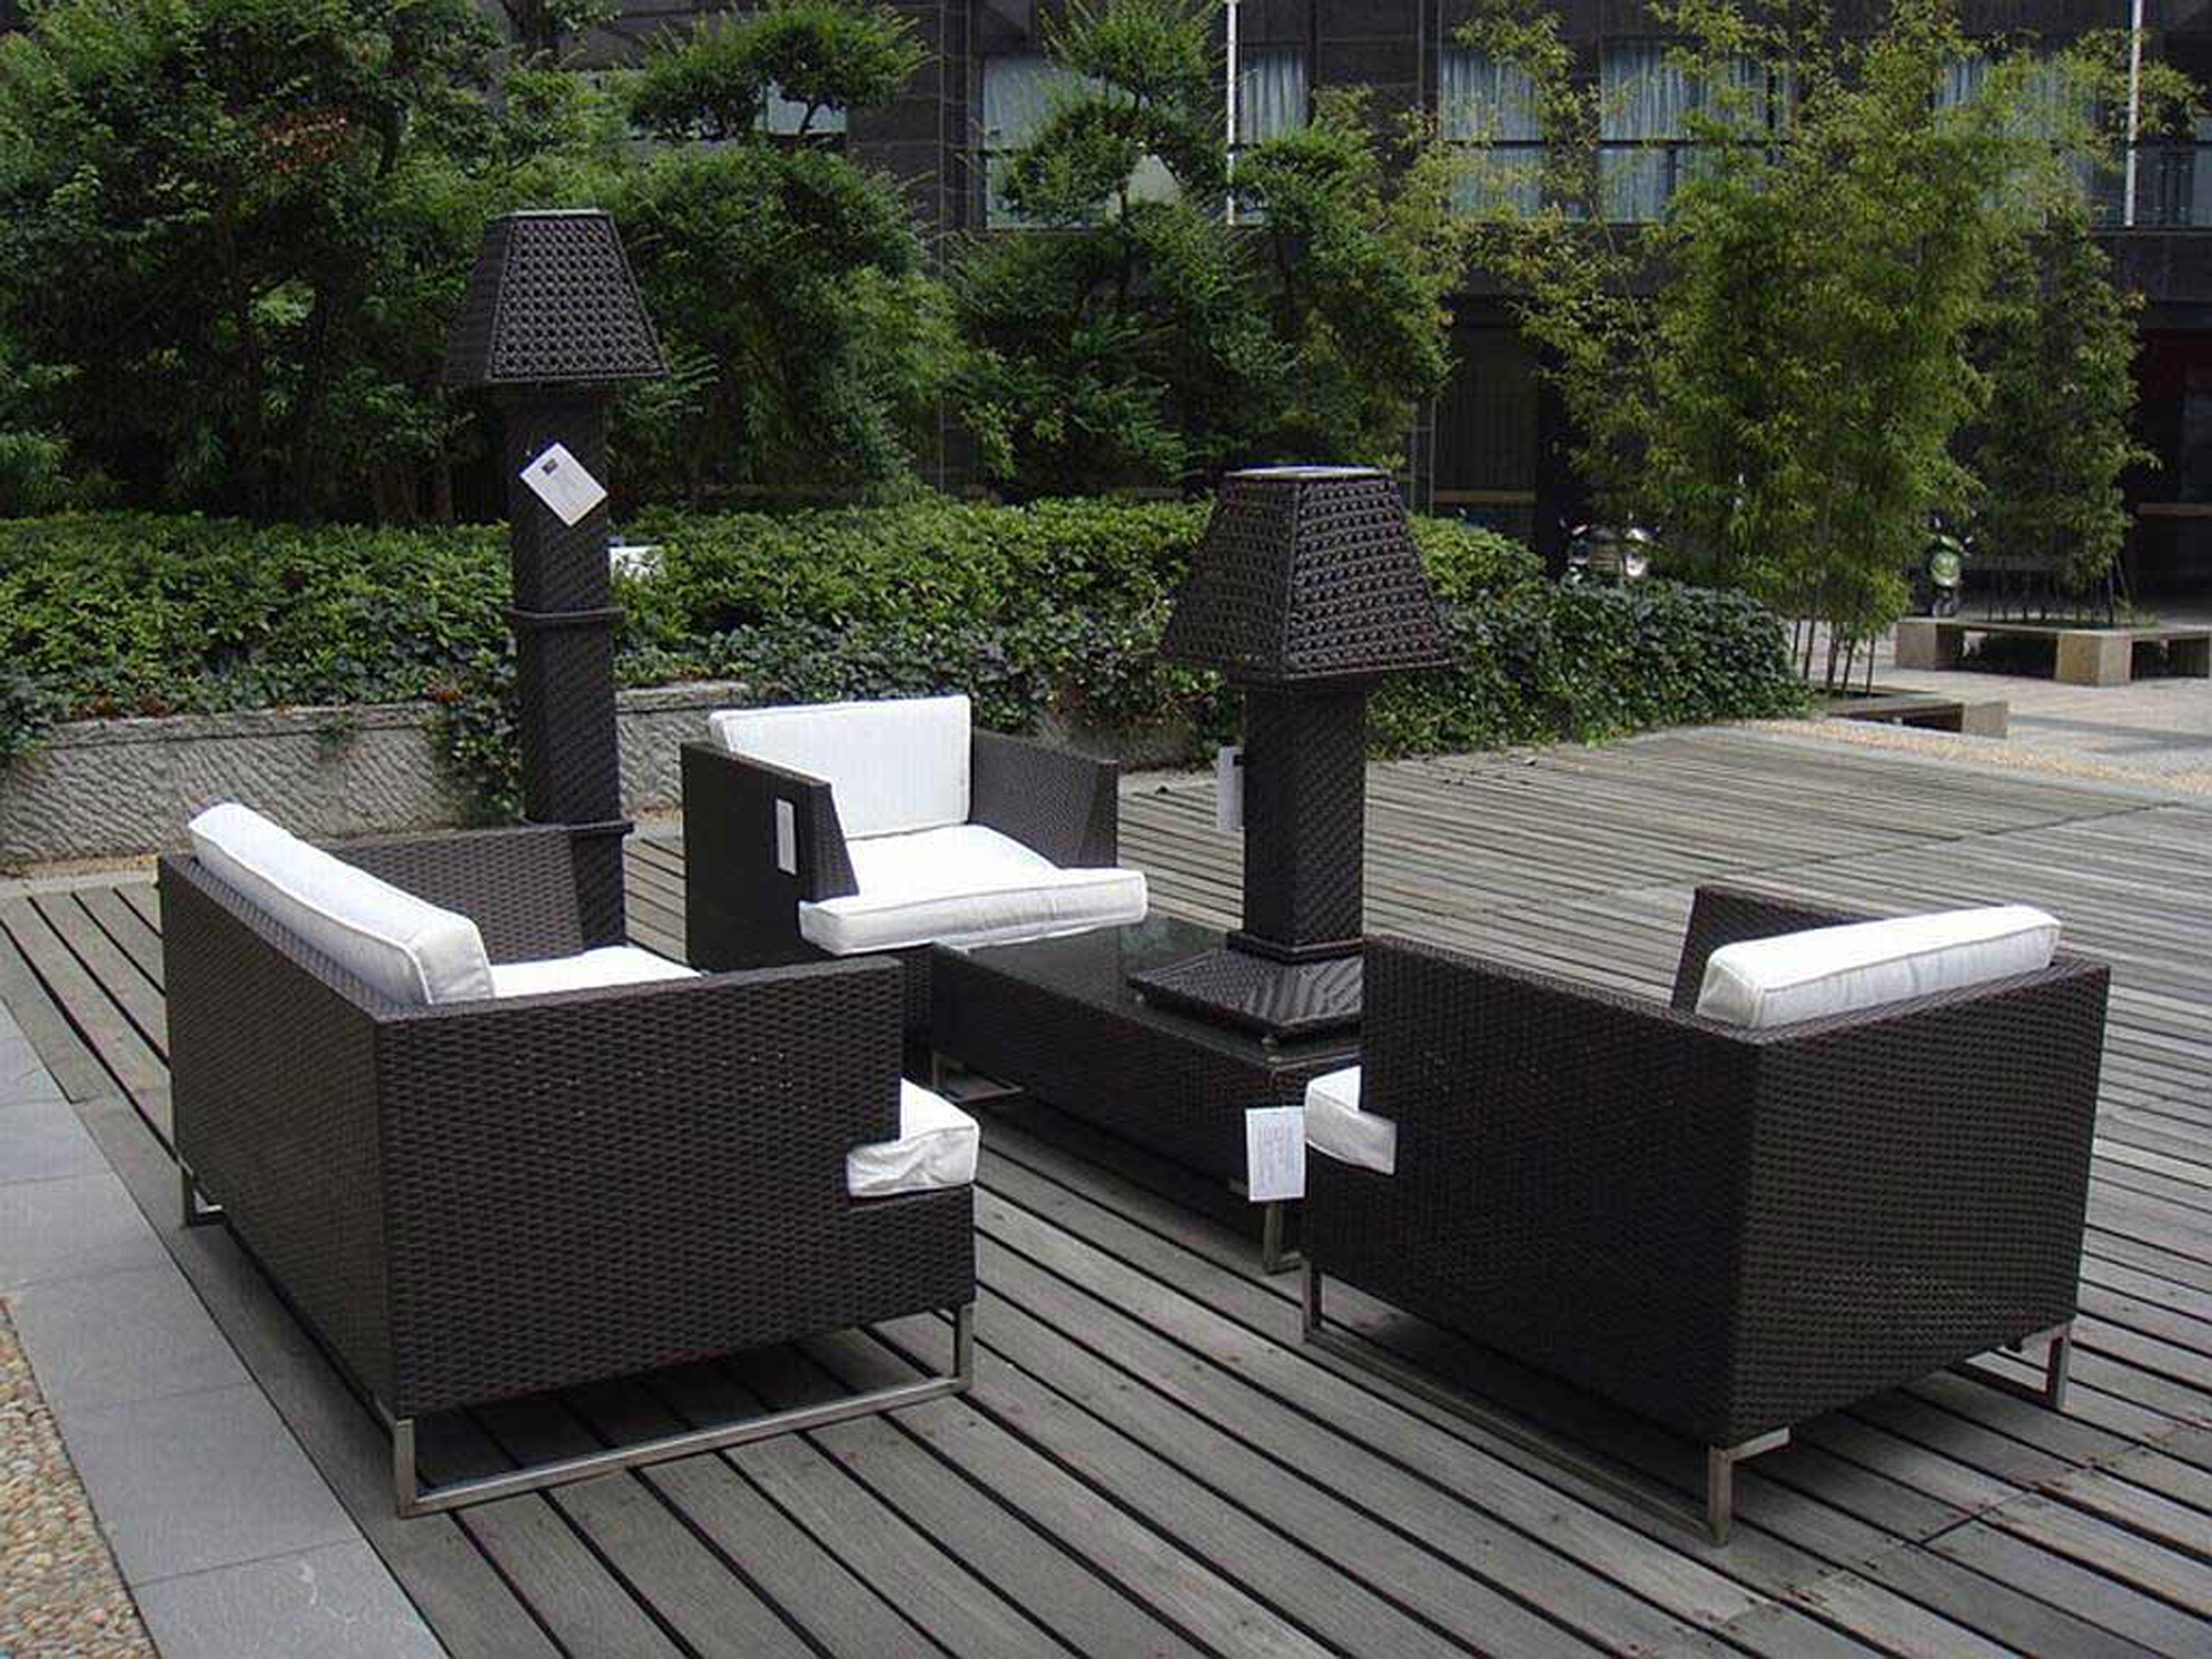 Luxury Modern Outdoor Design Idea With Black Wicker Sofas With White Seat Cushions And Black Coffee Table With Black Desk Lamp Affordable Modern Outdoor Design Ideas (Image 107 of 123)